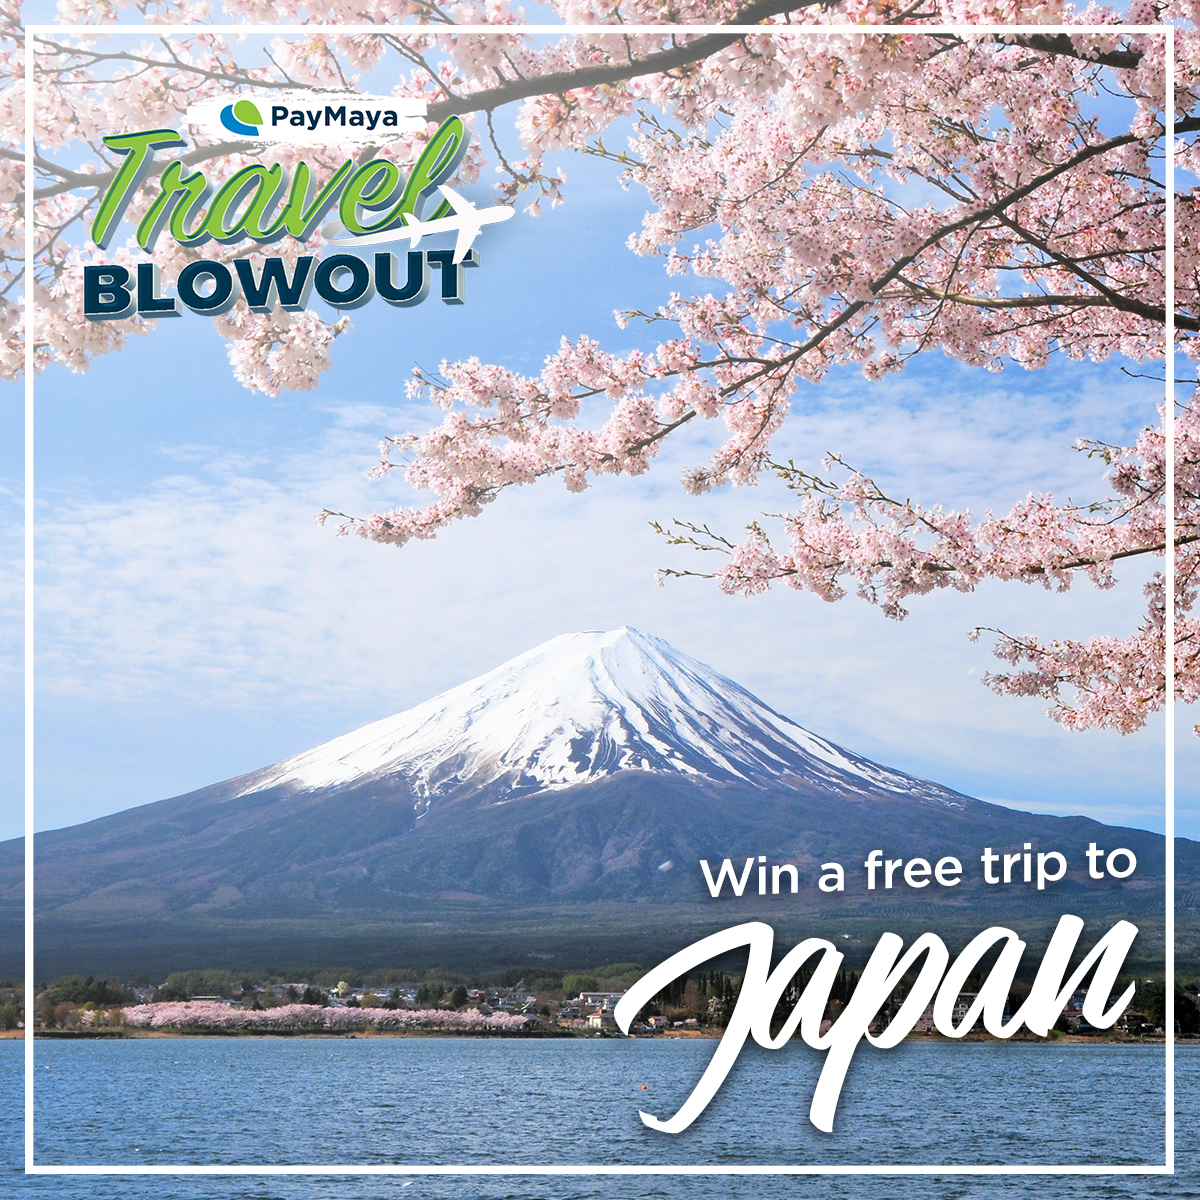 PayMaya_TravelBlowout_Japan